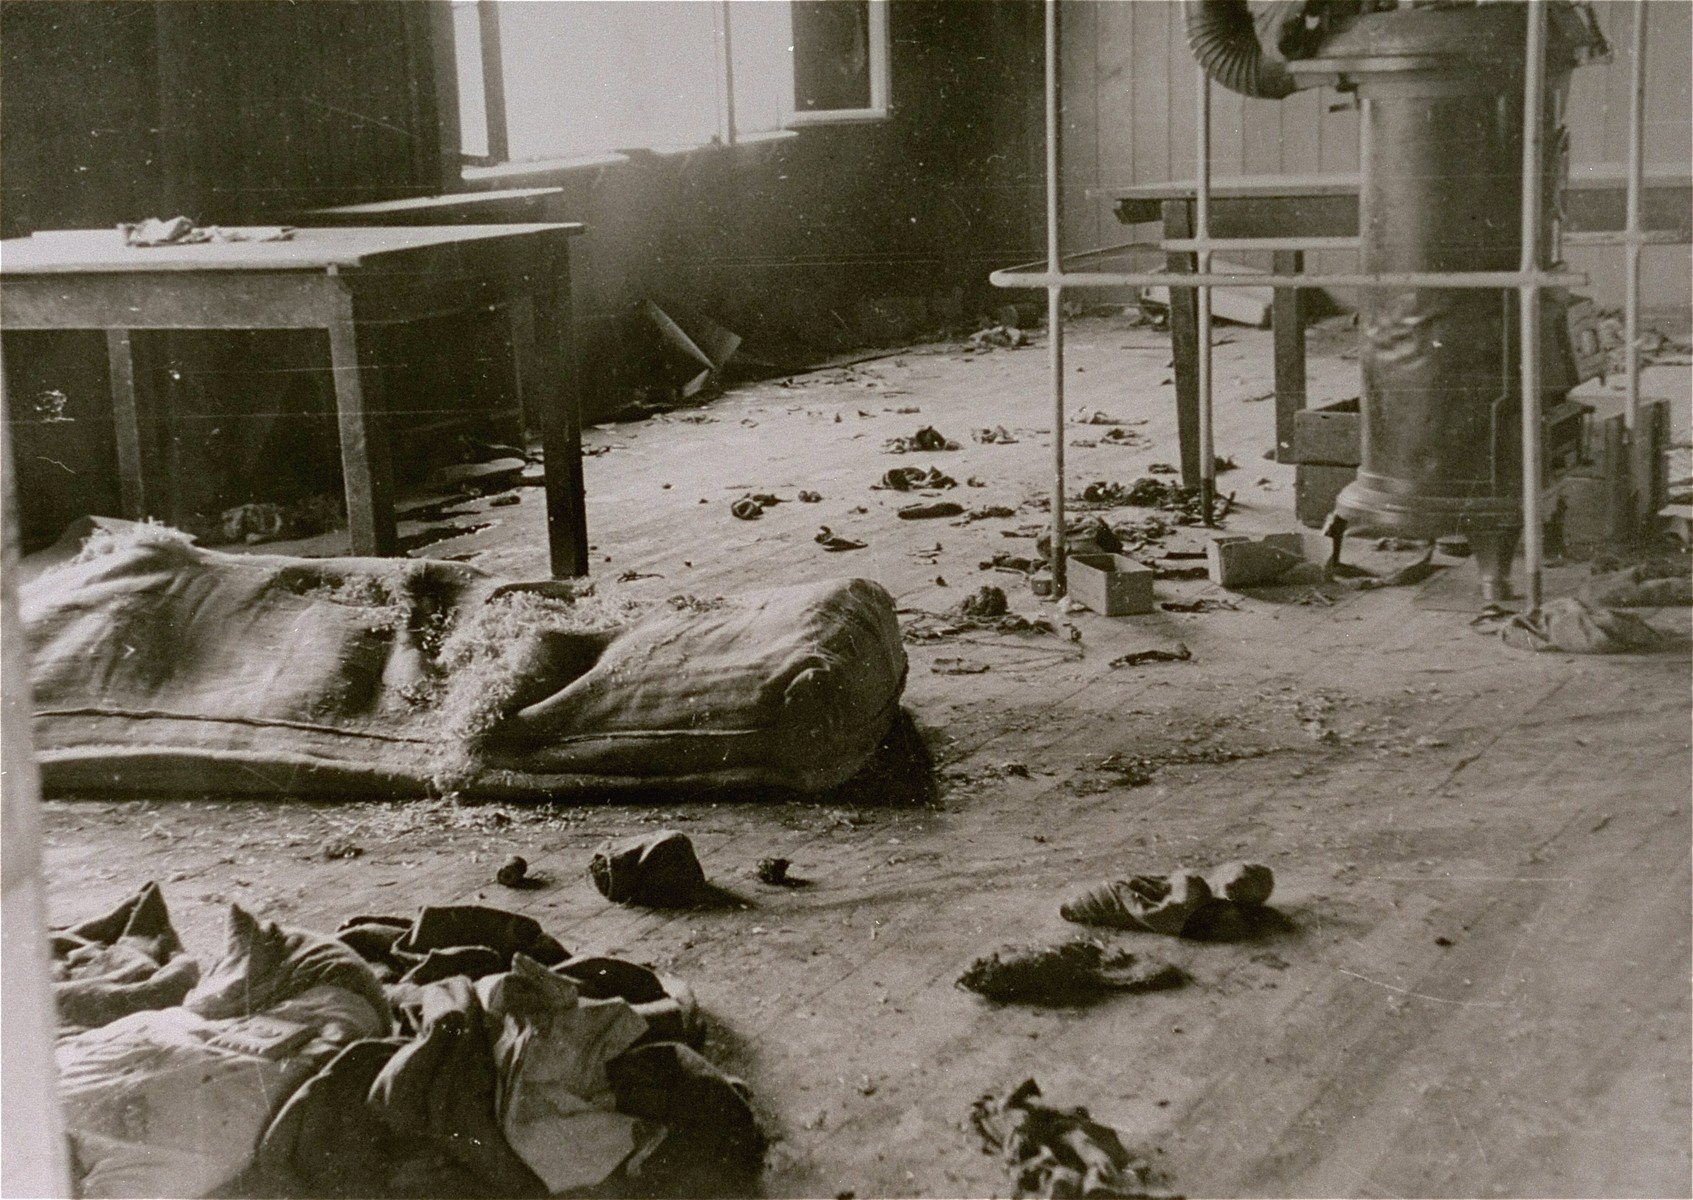 Interior view of  Block 20 of the Mauthausen concentration camp after an escape attempt.  According to the Nuremberg Trial testimony of Mauthausen survivor Francisco Boix, 700 Russian prisoners held in Block 20 attempted to escape from the camp at the end of January 1945 and meet the Red Army as it approached Yugoslavia.  Of these only 62 survived, the rest having been killed during the escape or on route to the border.